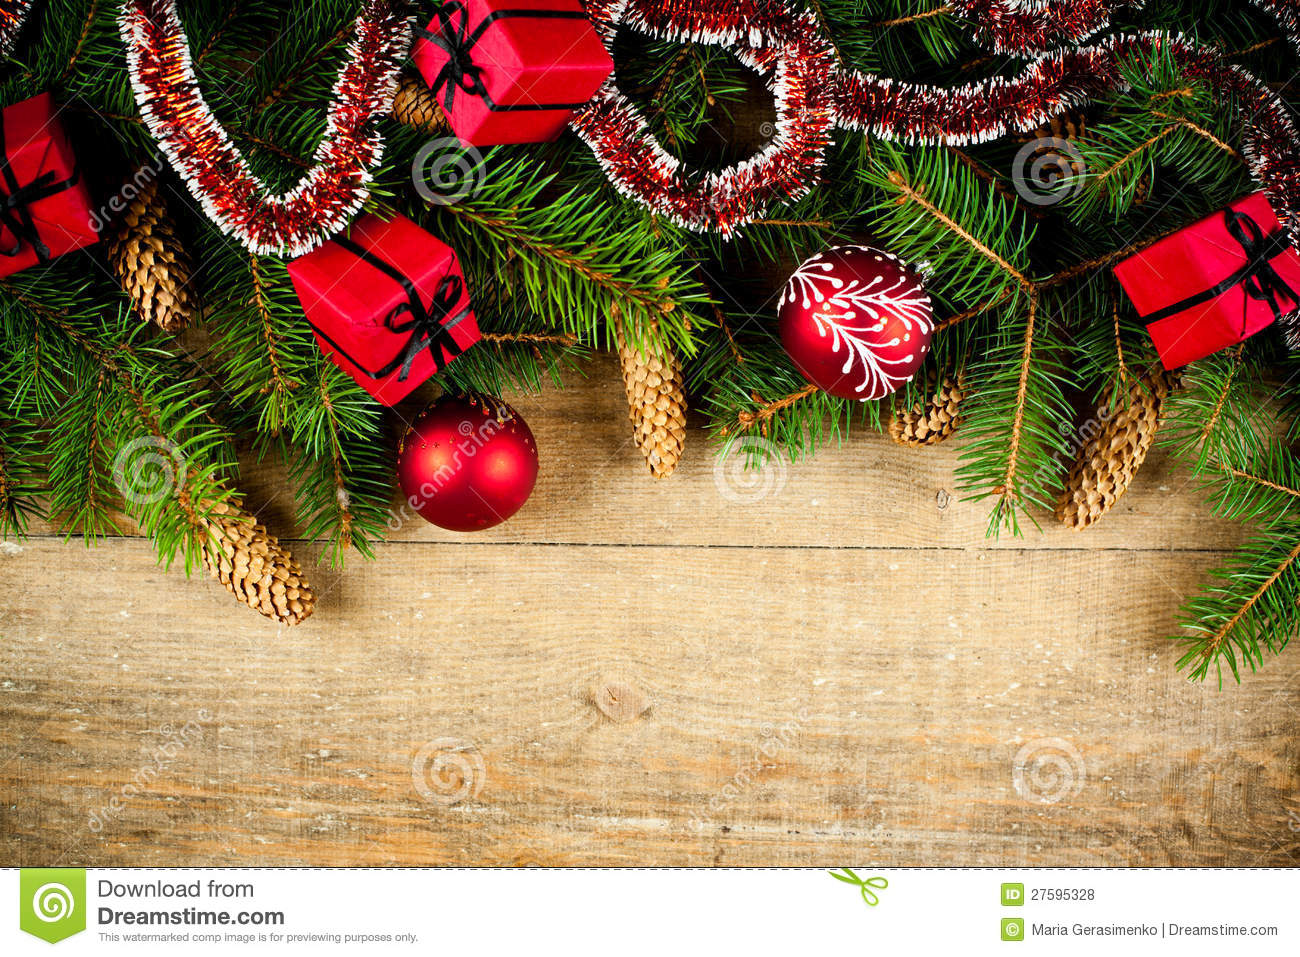 Christmas fir tree with pinecones and decorations stock for Fir cone christmas tree decorations